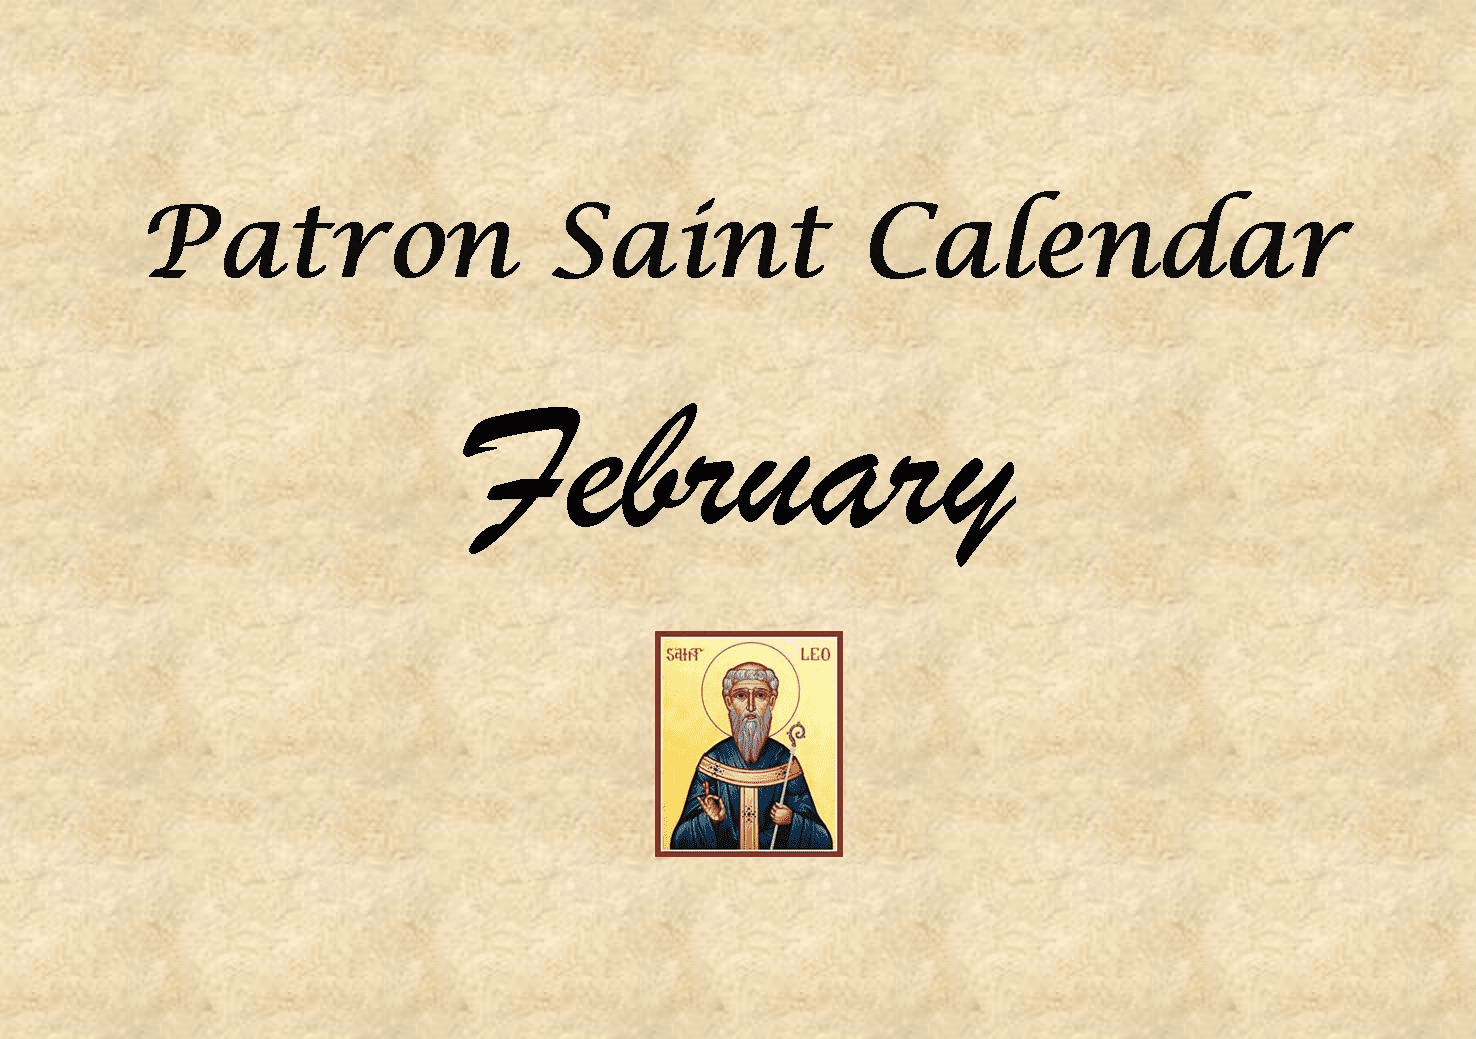 Patron Saint Memorial Feast Day for the Month of February